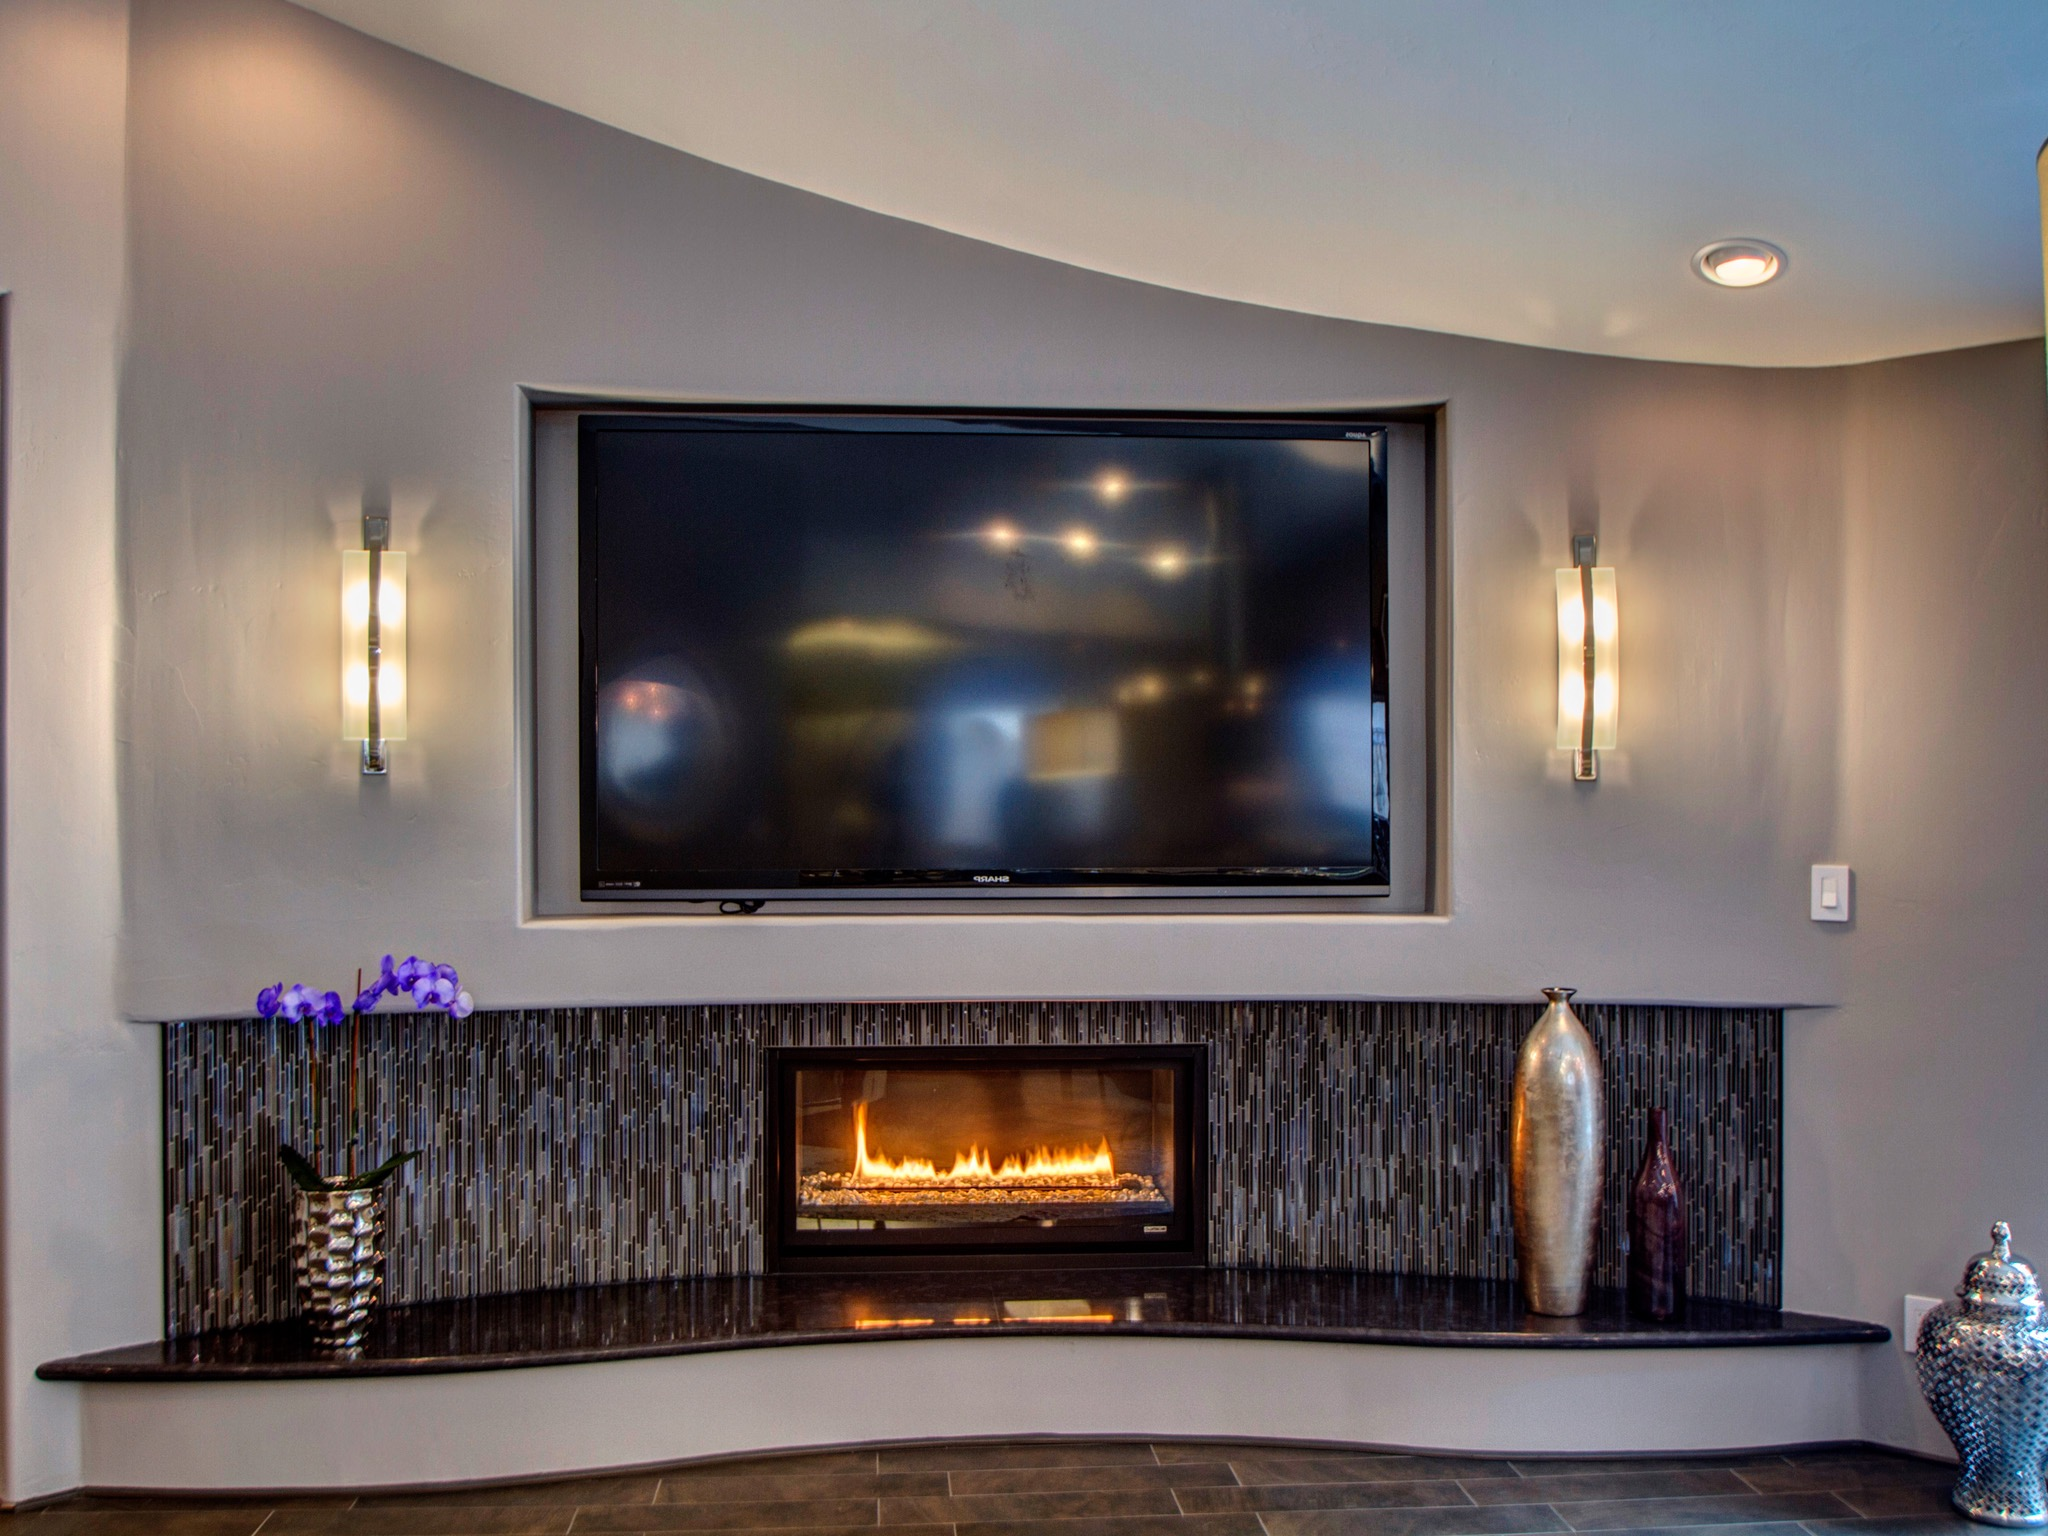 Living Room With Art Deco Inspired Gas Fireplace (Image 15 of 20)